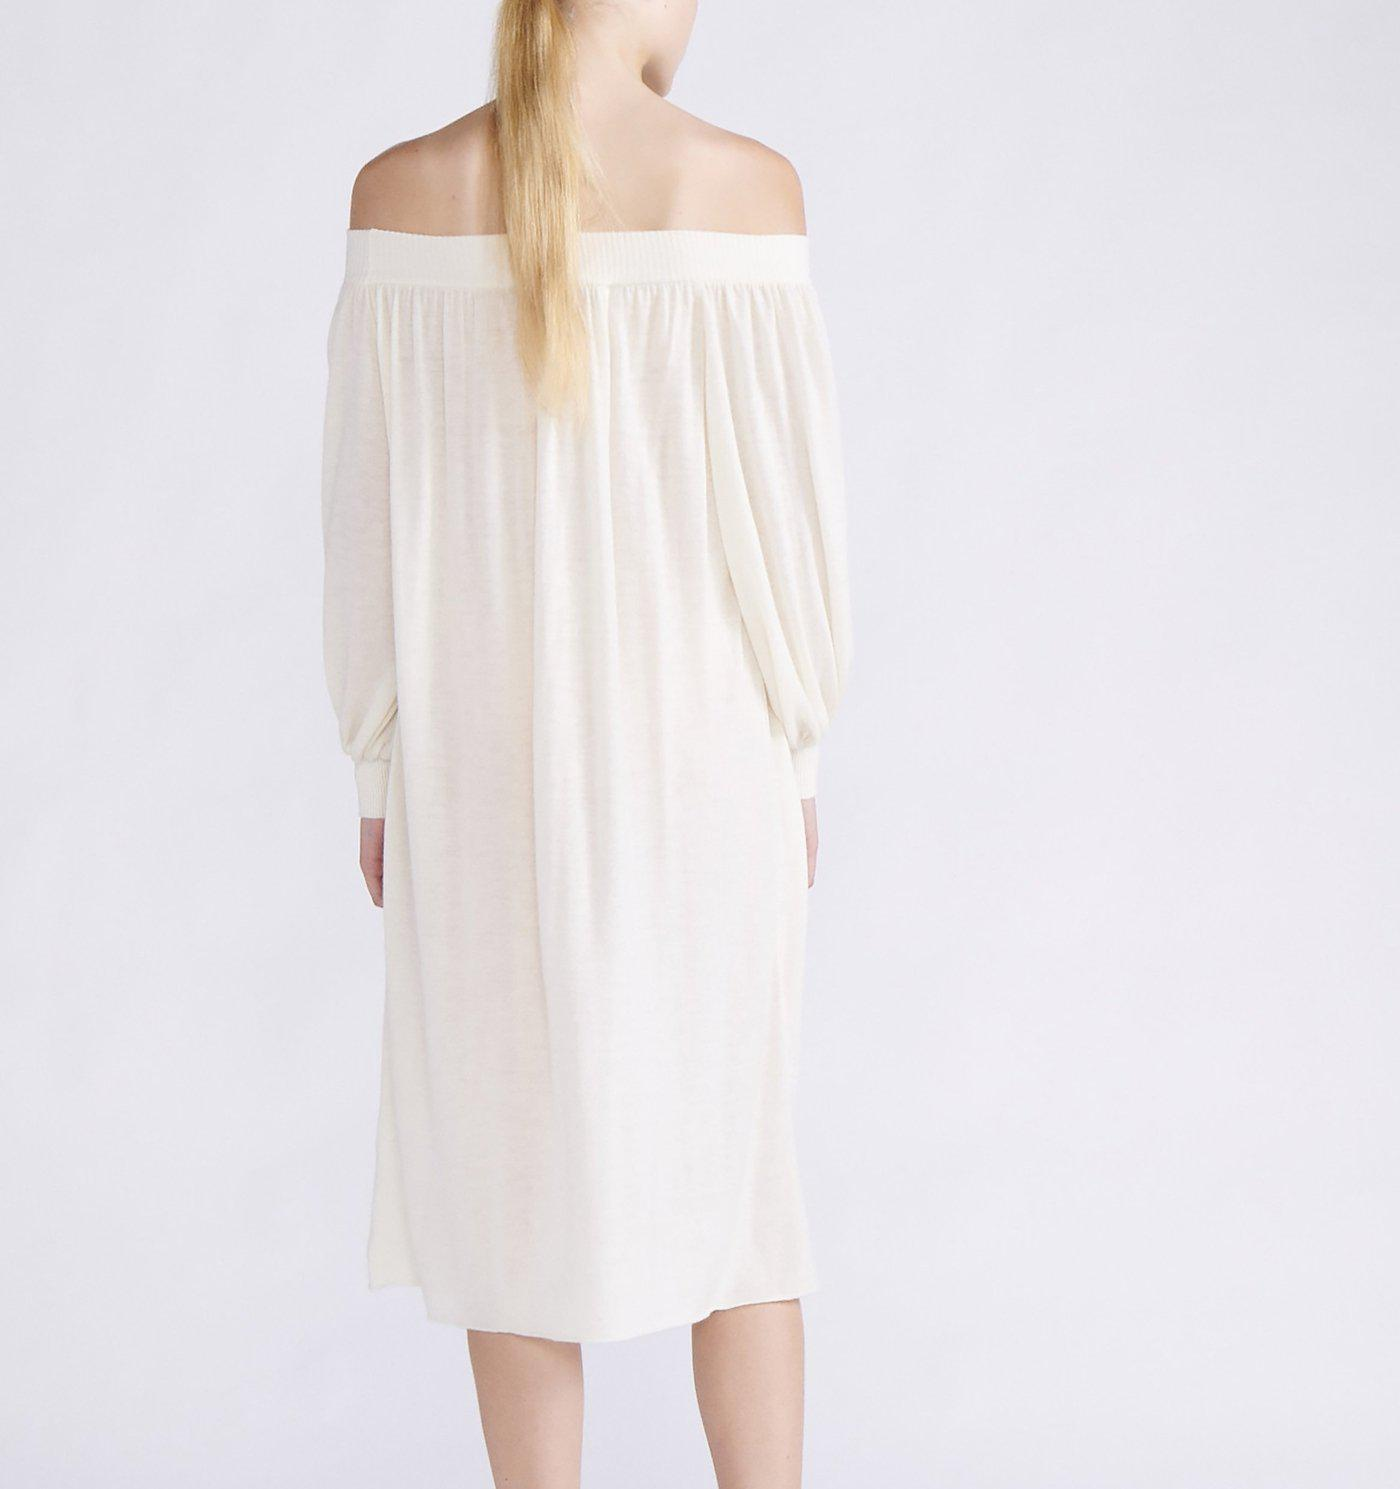 RYAN ROCHE CASHMERE KNIT OFF-THE-SHOULDER MIDI DRESS